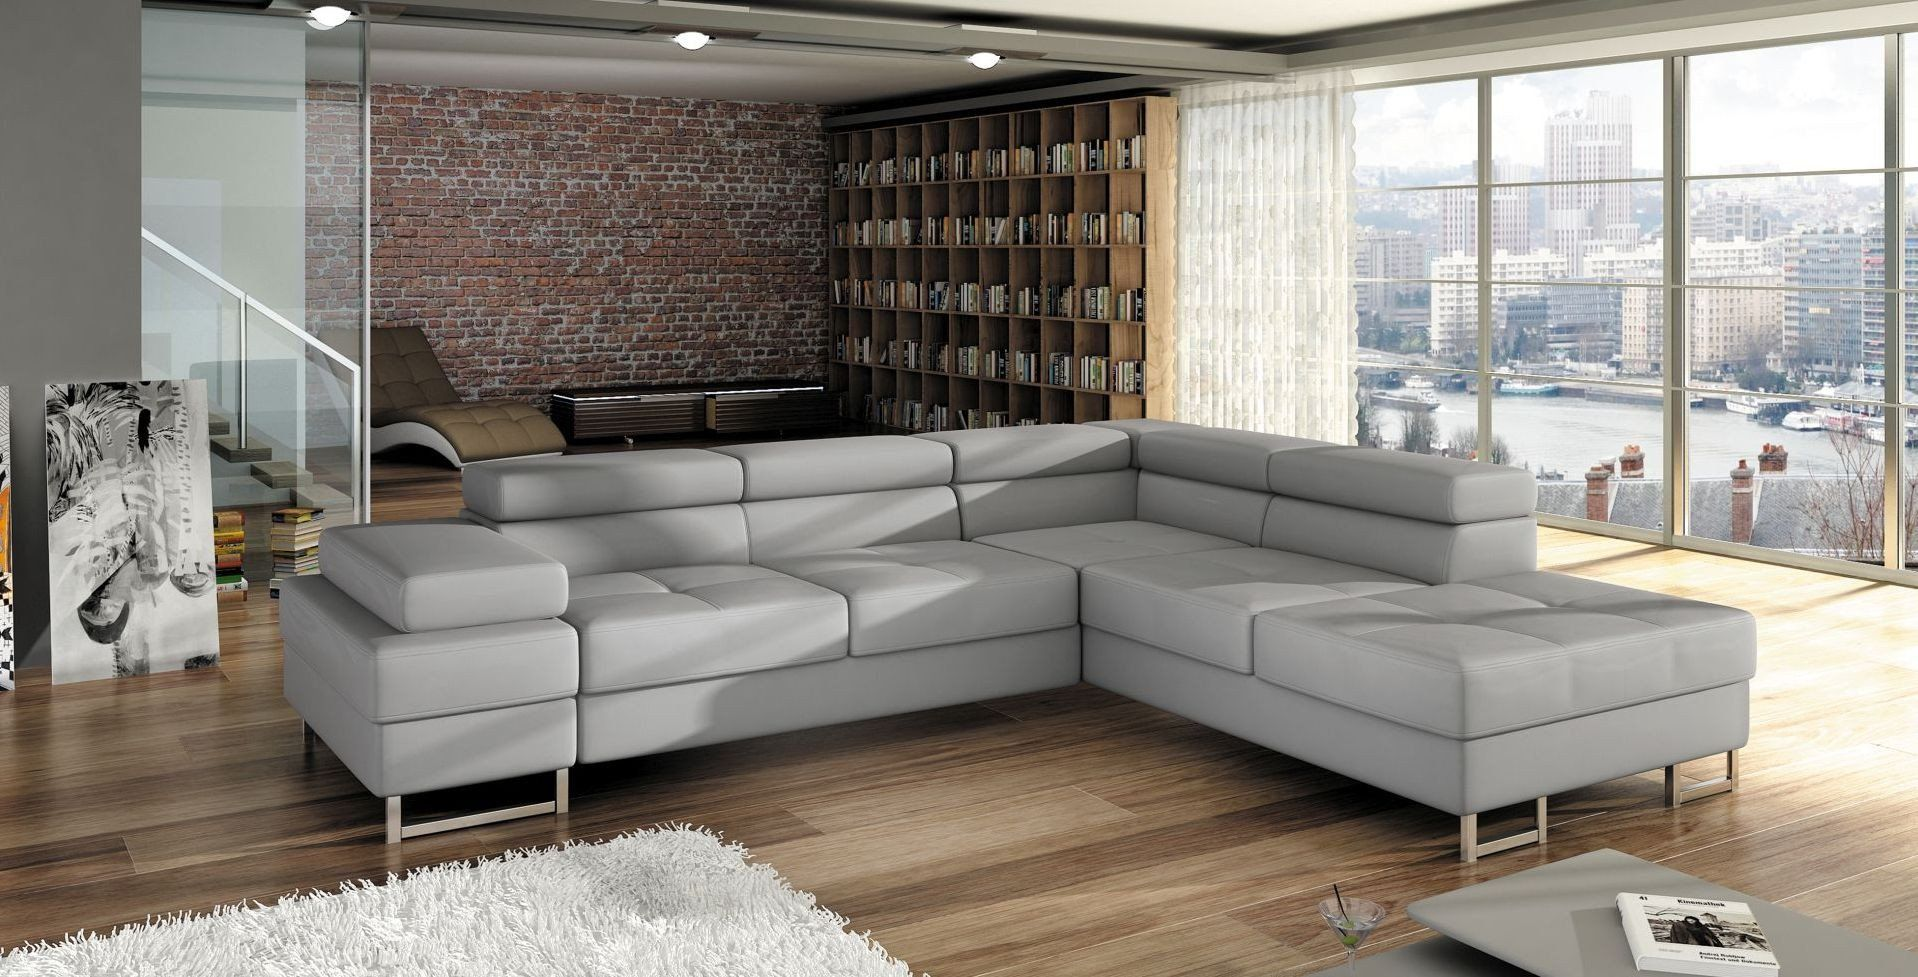 Special Offers 799 Included 2 Colours Of Fabrics White Black And Dark Grey Faux Leather The Modern Corner Sofa Bed T Corner Sofa Bed Corner Sofa Furniture